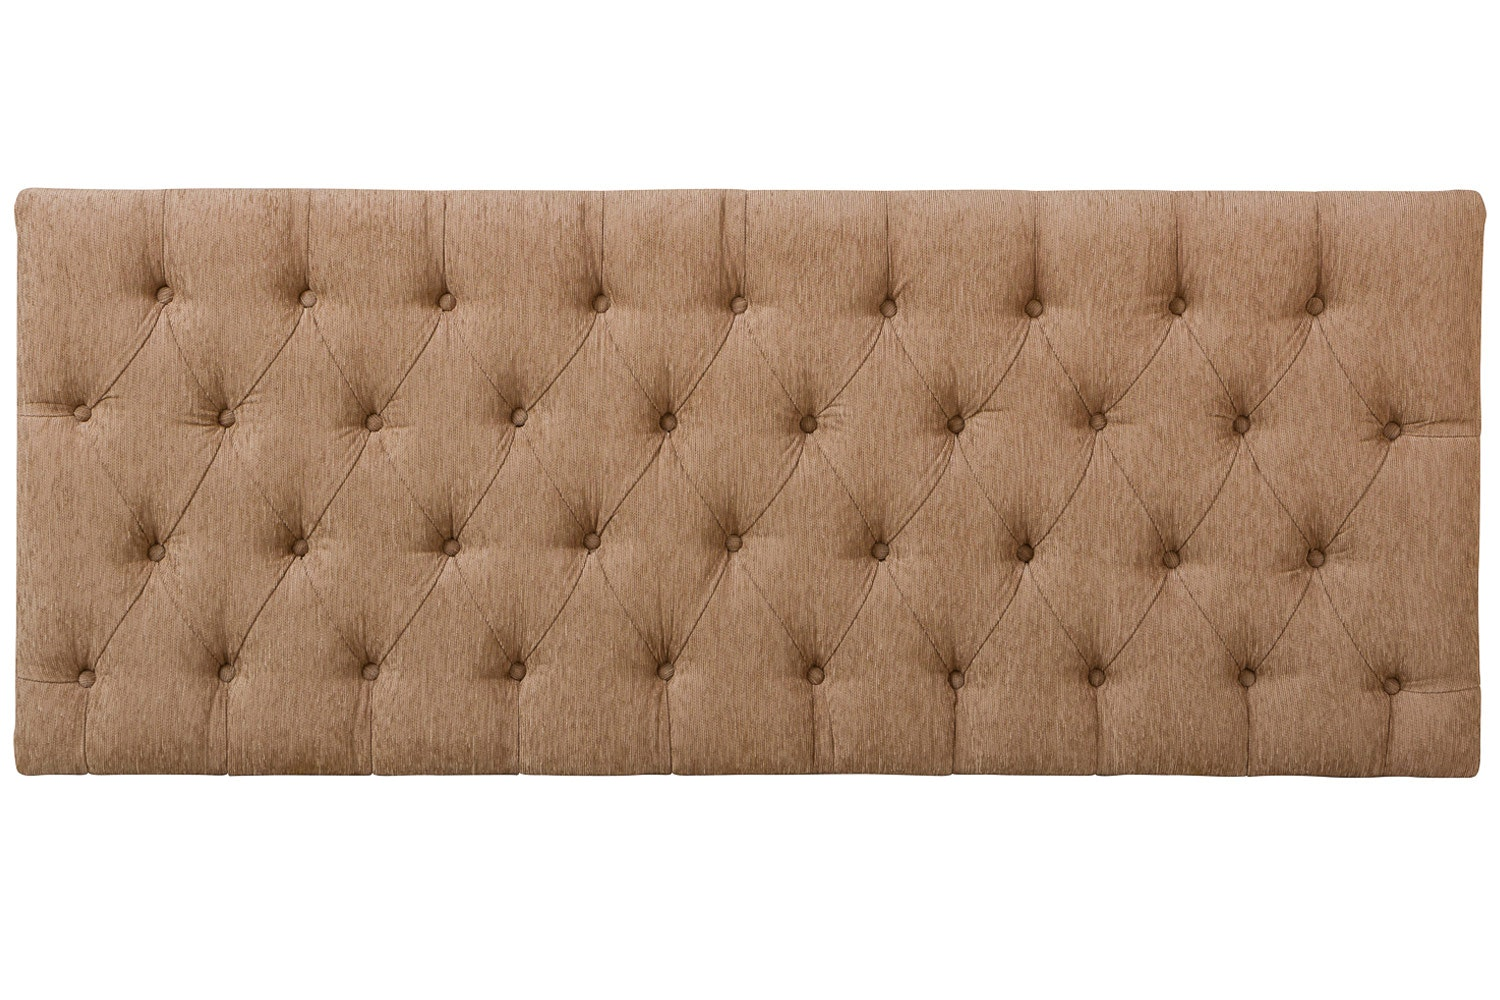 Marley Fabric Headboard | 5'